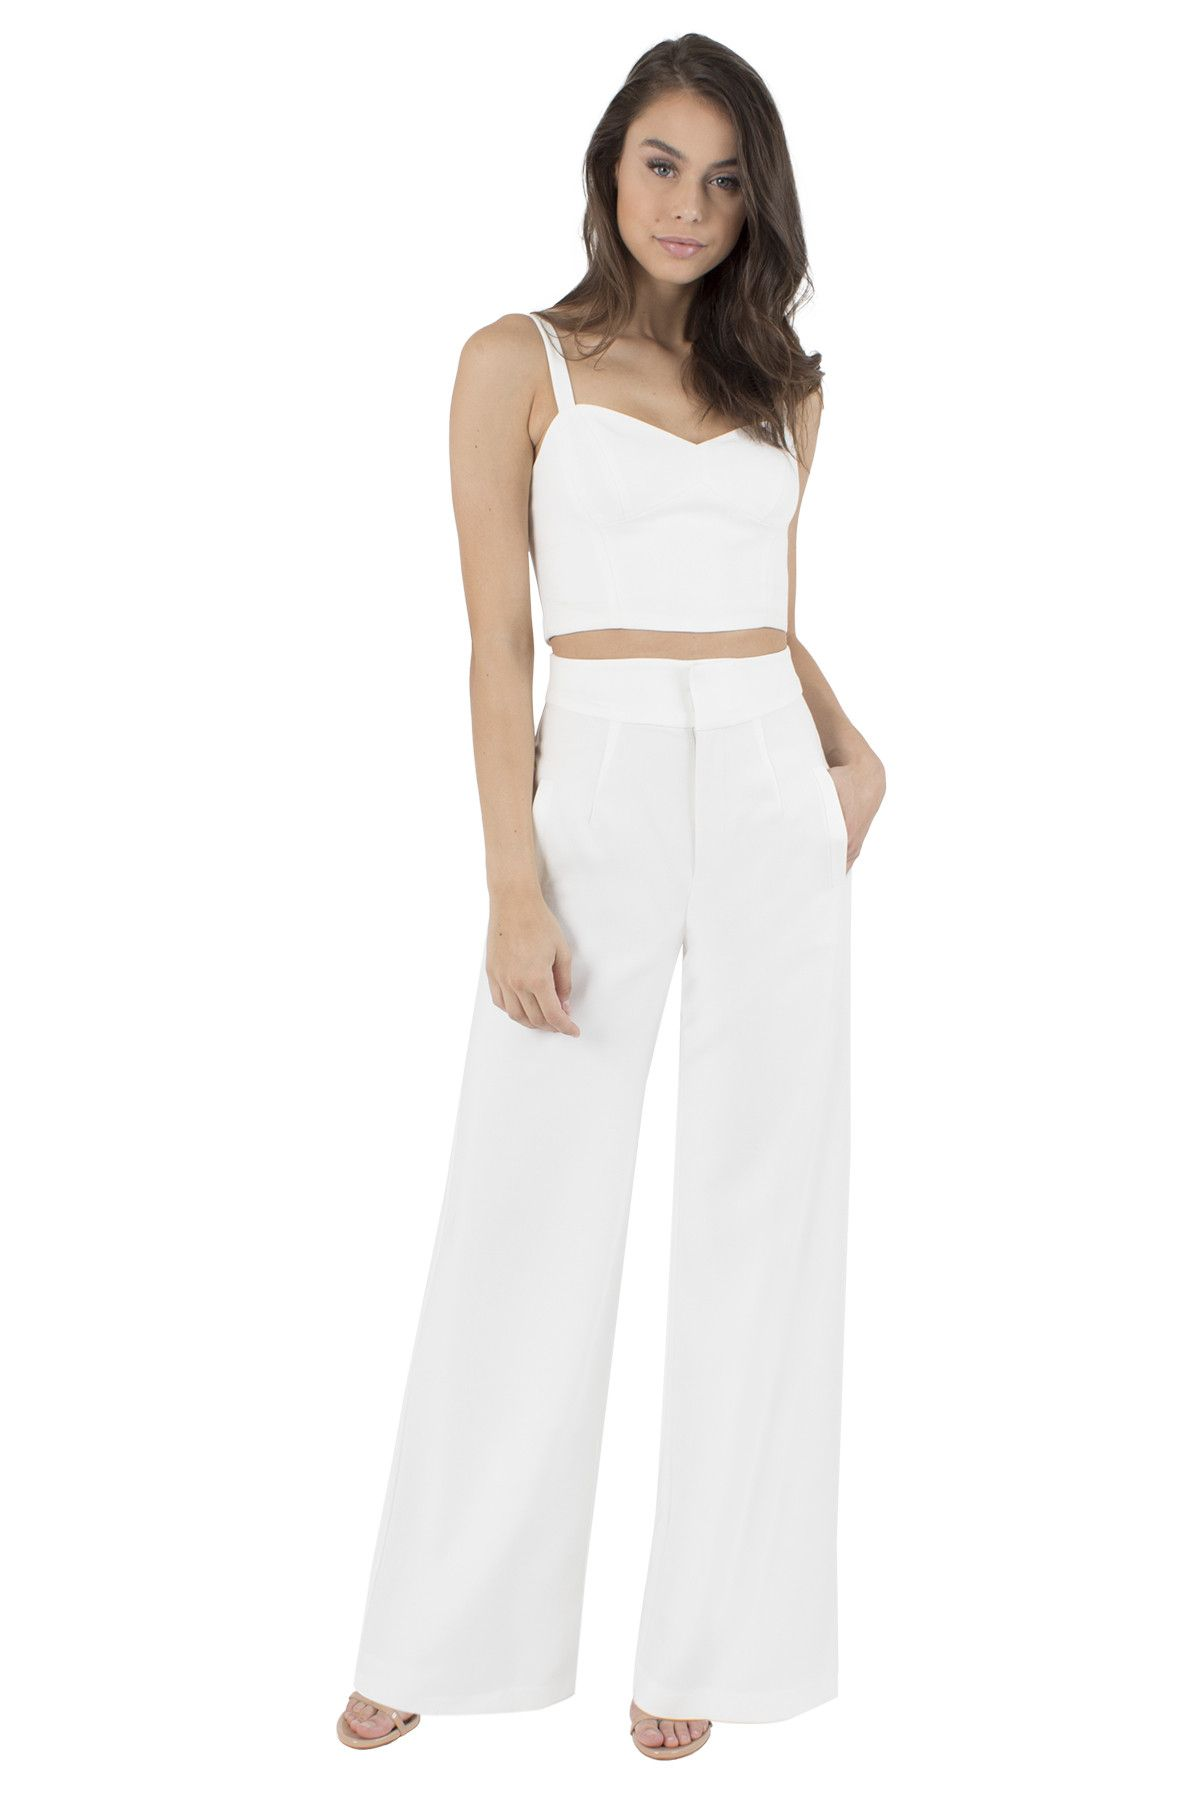 0f2d11b7835b Black Halo Kalem Twp Piece Jumpsuit - white wedding 2 piece jumpsuit - crop  top and pants